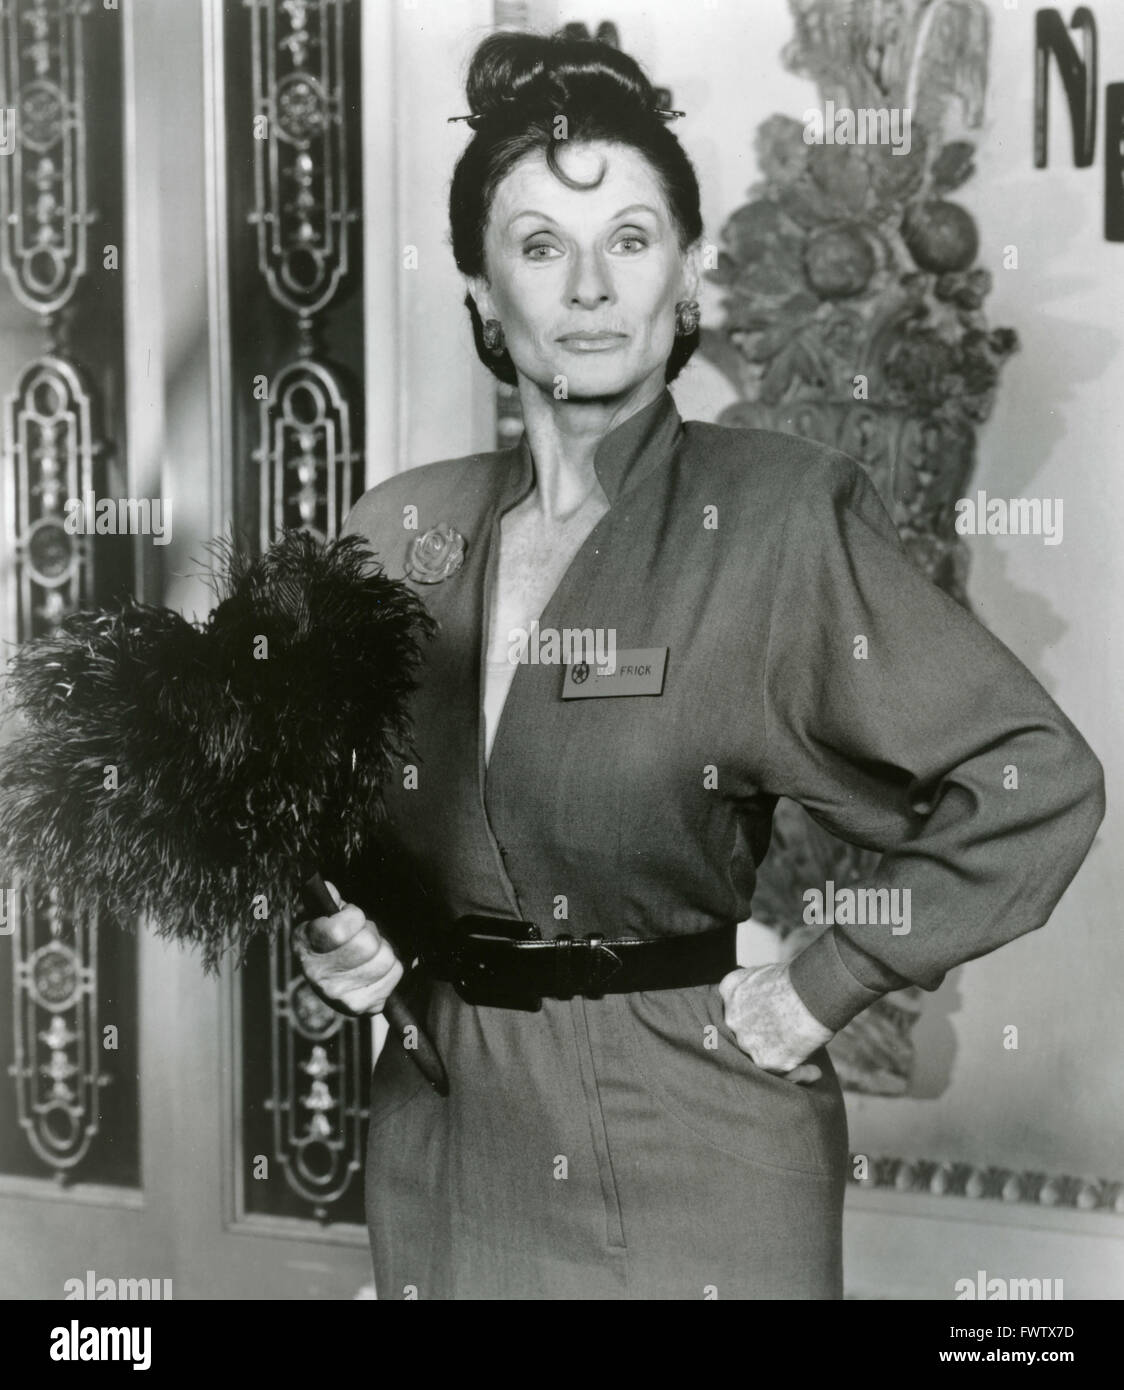 Cloris Leachman as Ms. Frick in The Nutt House, USA 1989 - Stock Image